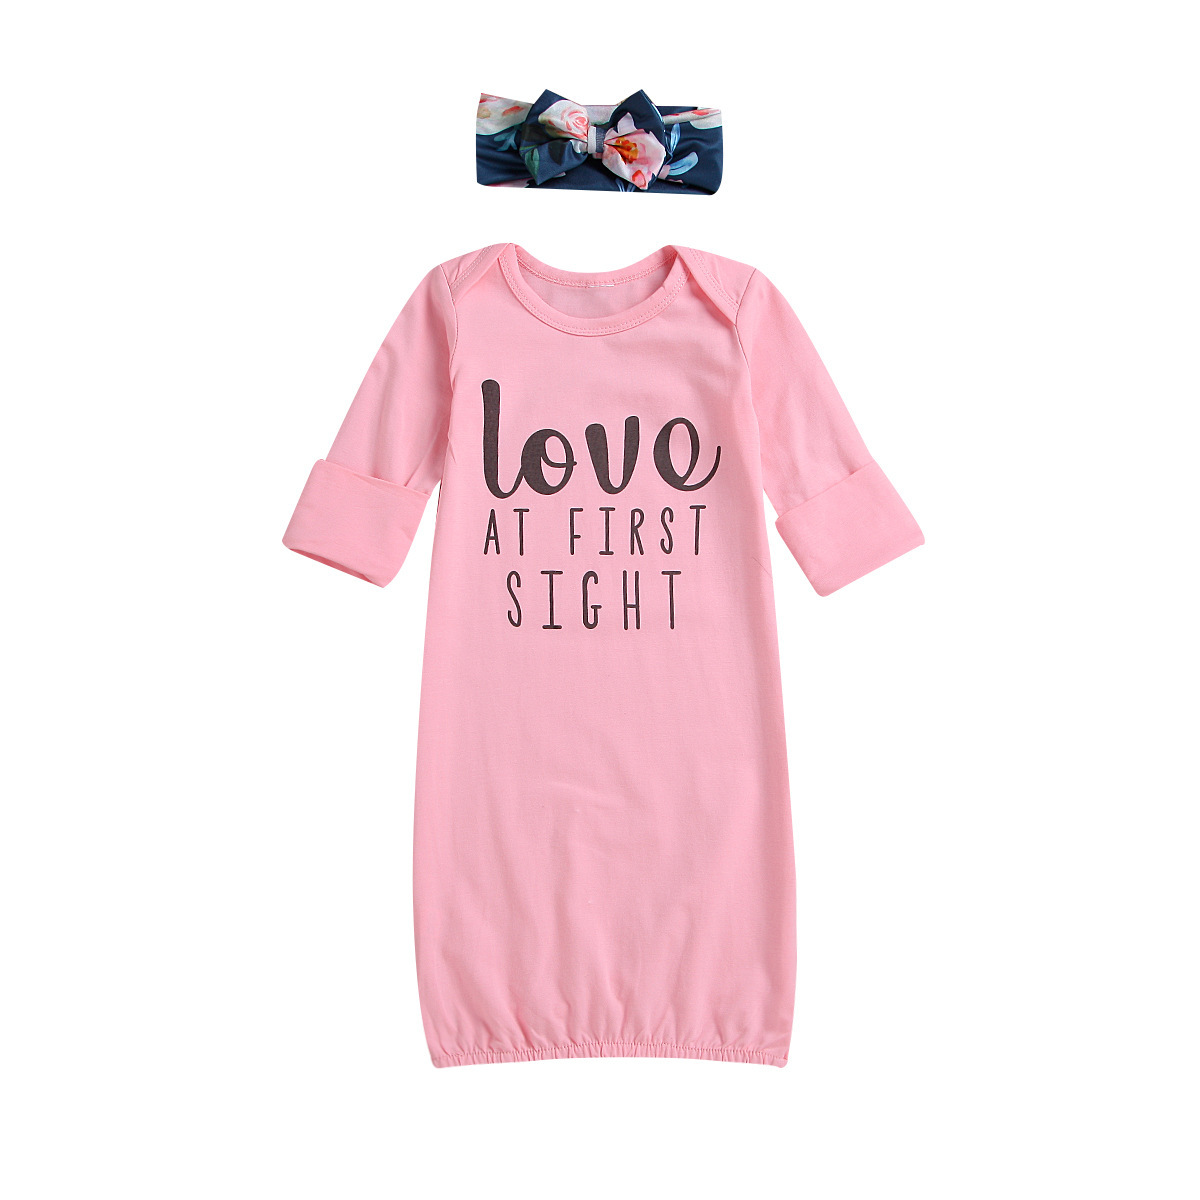 Infants Child Clothing 2019 Spring Europe And America Hot Selling Girls Pure Cotton Lettered Long Sleeve Nightgown Tracksuit